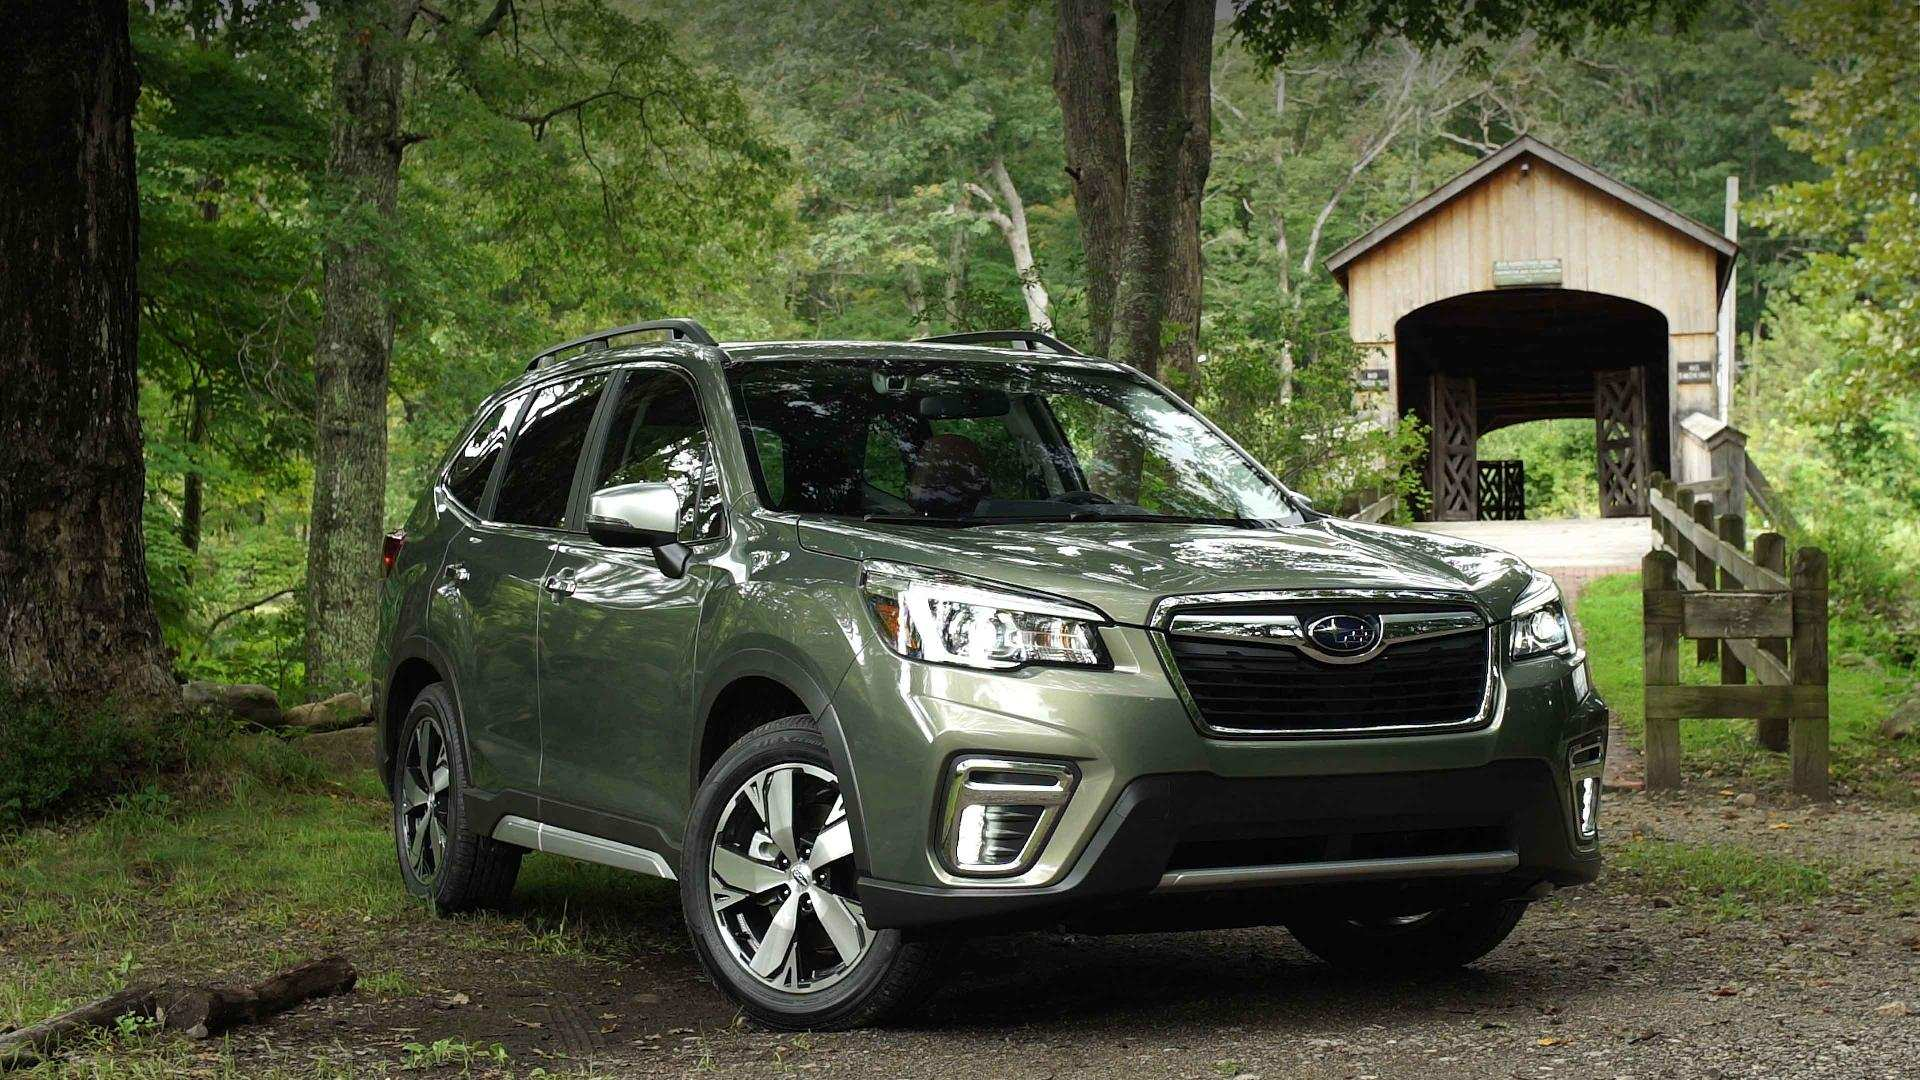 32 Great The 2019 Subaru Forester Vs Jeep Cherokee Review Price and Review with The 2019 Subaru Forester Vs Jeep Cherokee Review